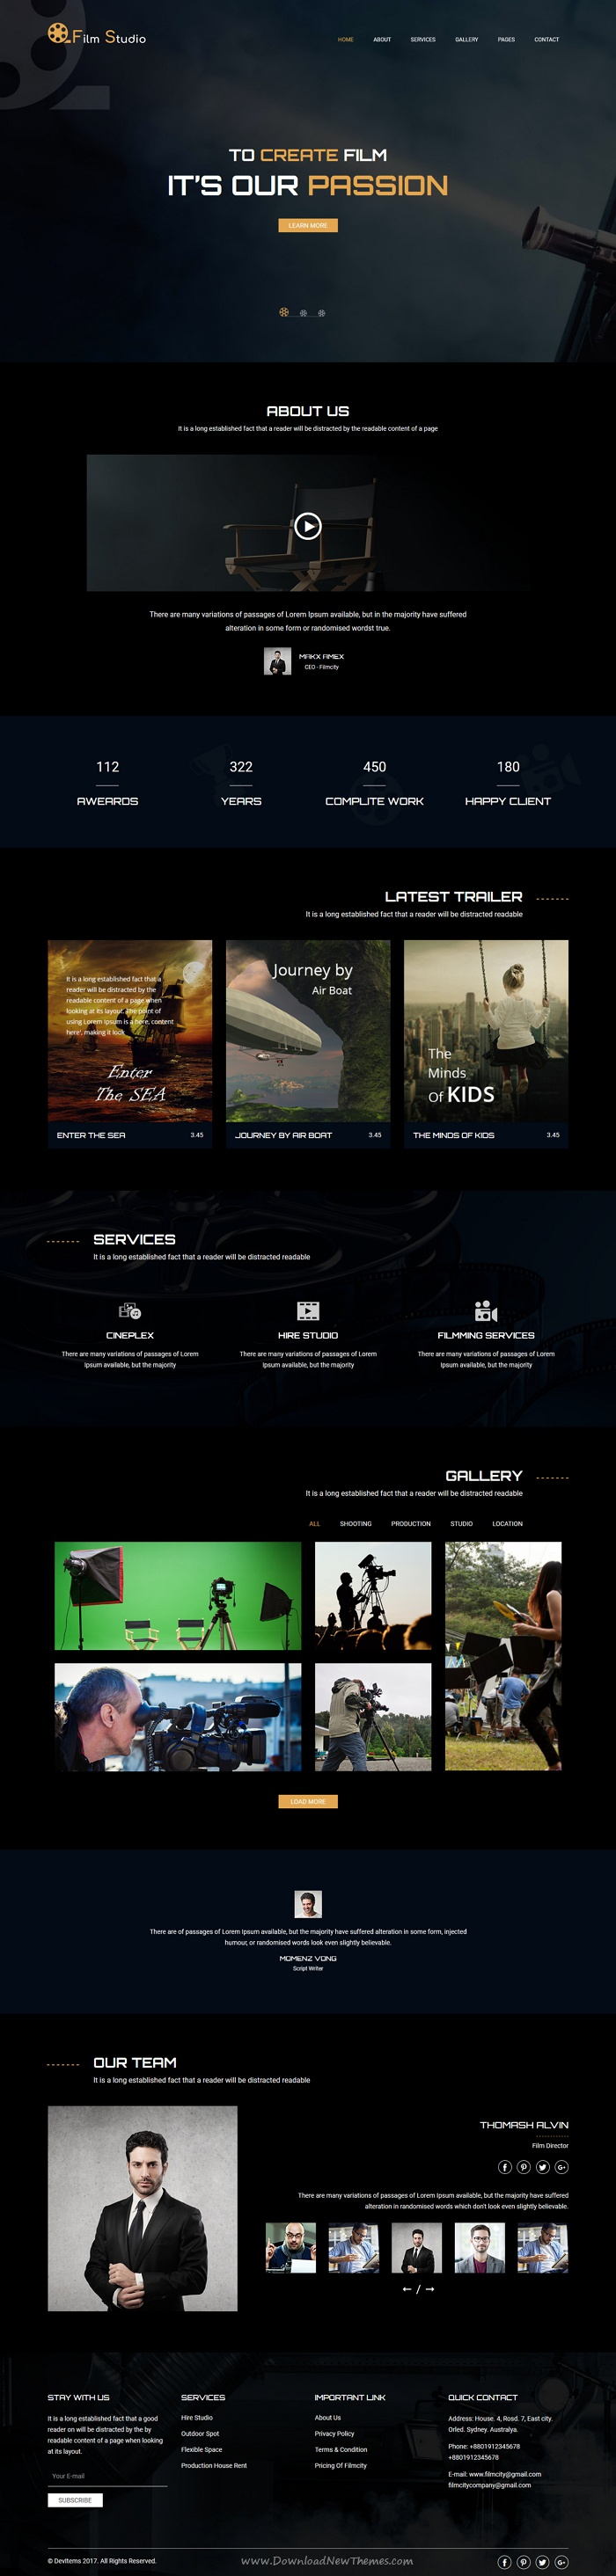 Film studio movie production film studio creative film studio is clean and modern design responsive html theme for film campaign and movie marketing website download now maxwellsz